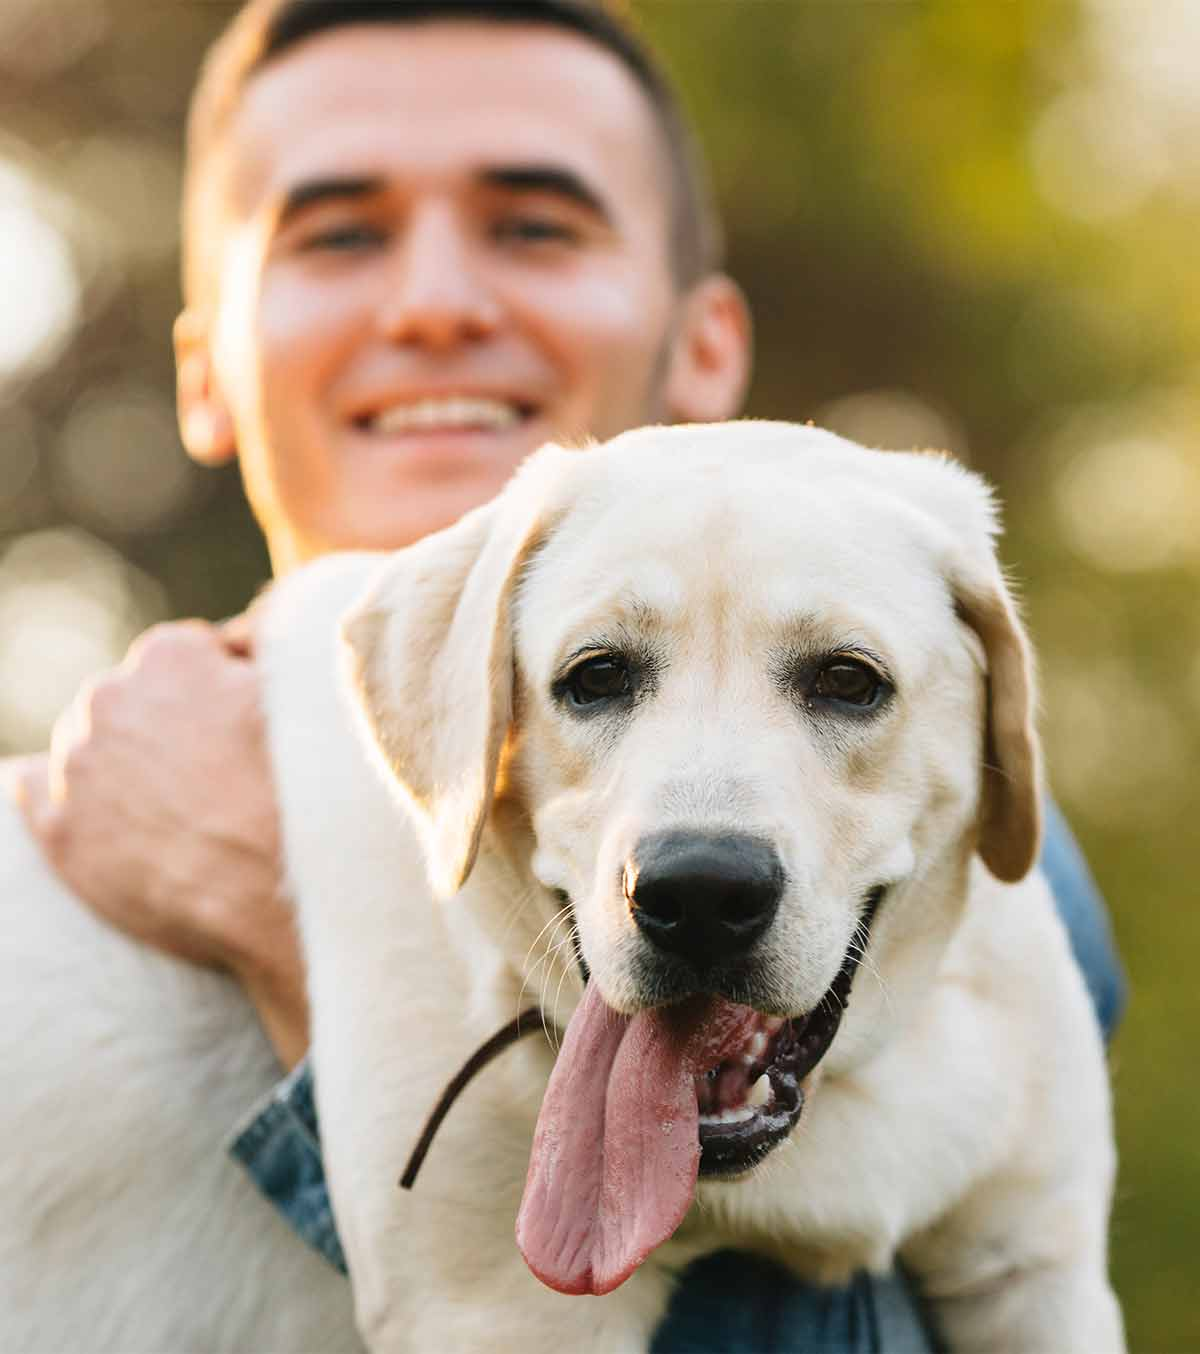 fathers day gift ideas from the dog